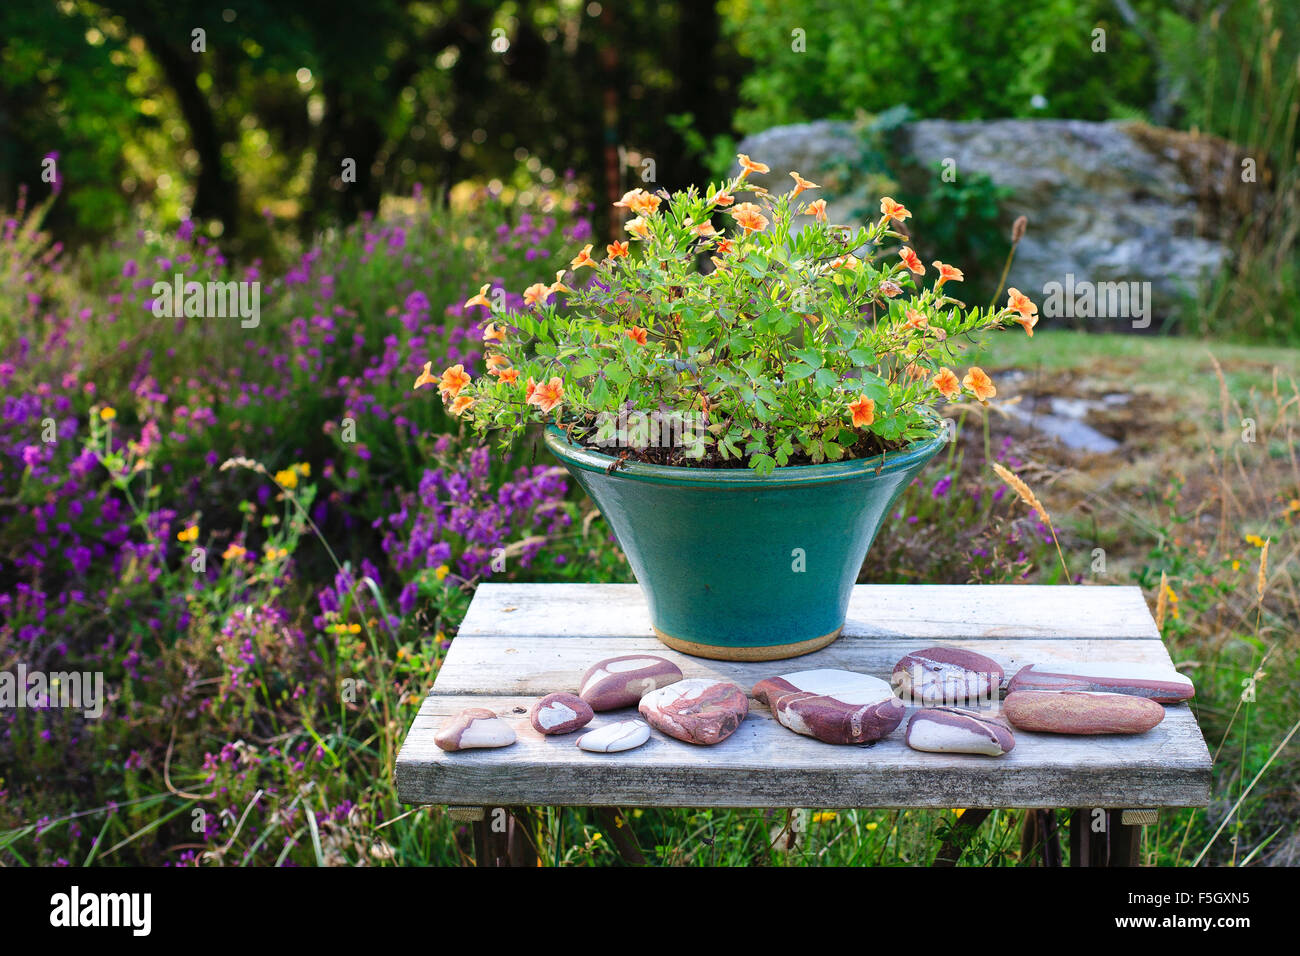 Flowers in plant pot on wooden table outdoors, with pebbles - Stock Image